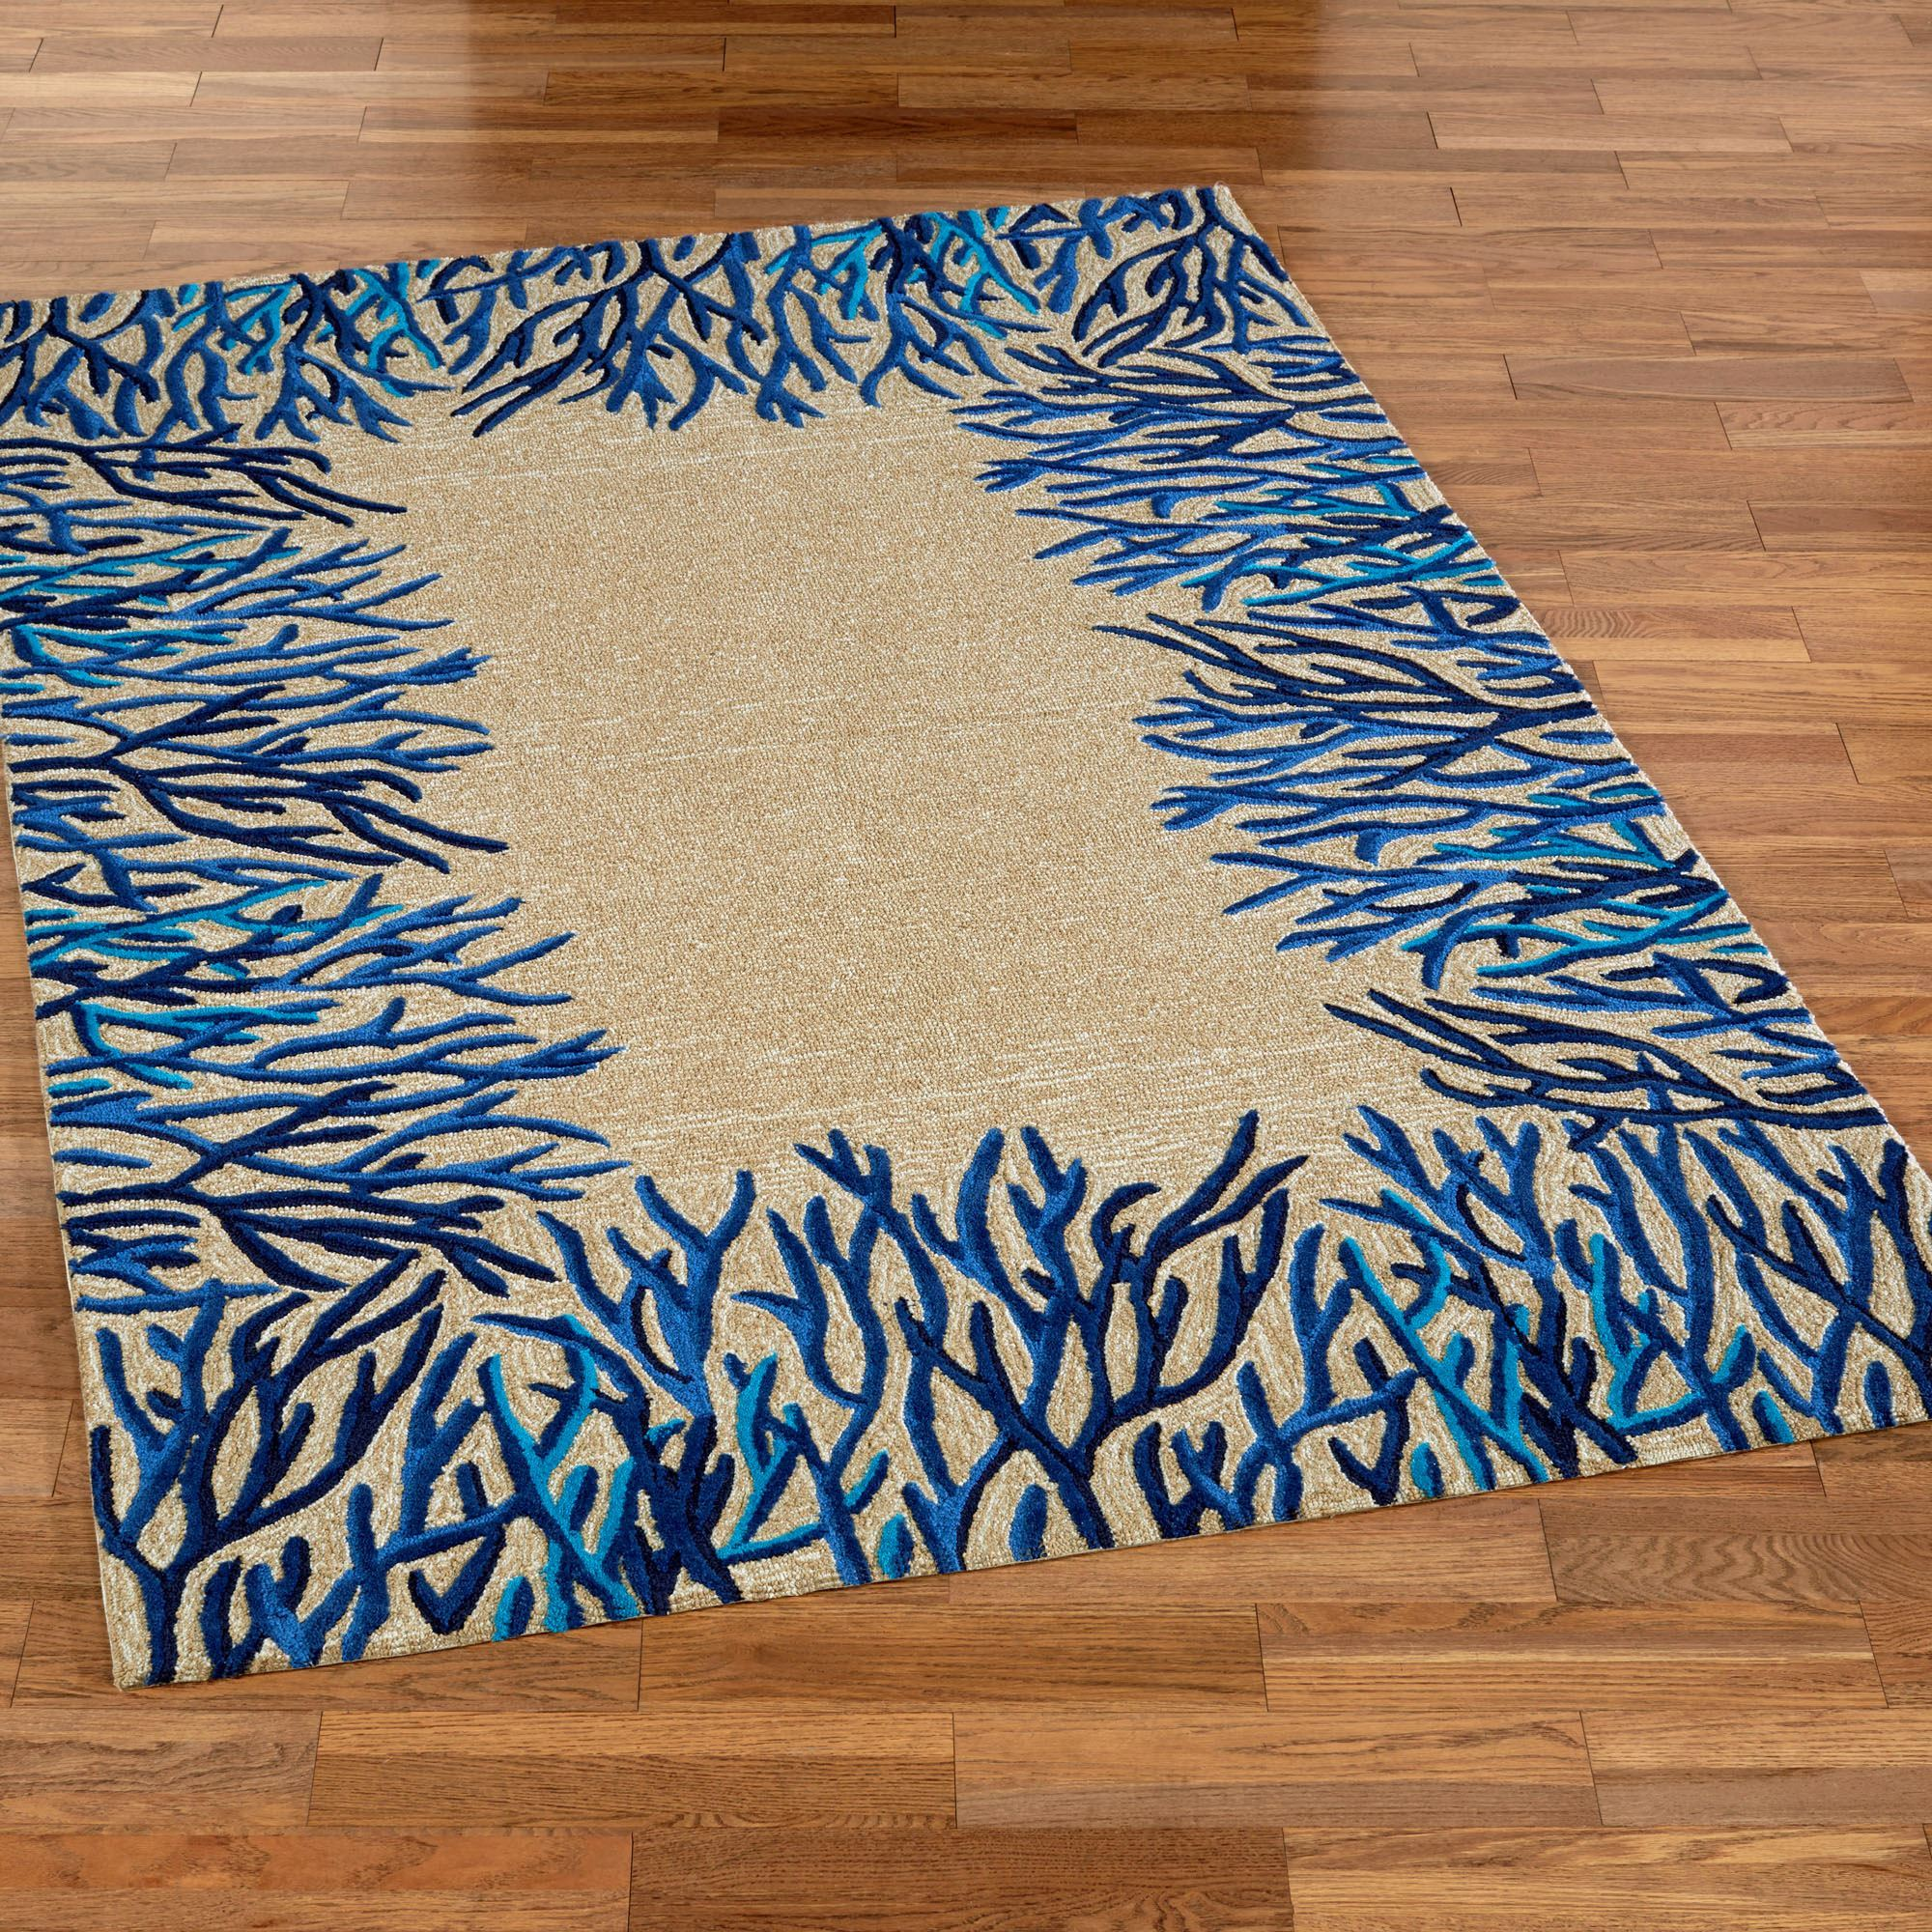 blue coral reef indoor outdoor area rugs. Black Bedroom Furniture Sets. Home Design Ideas